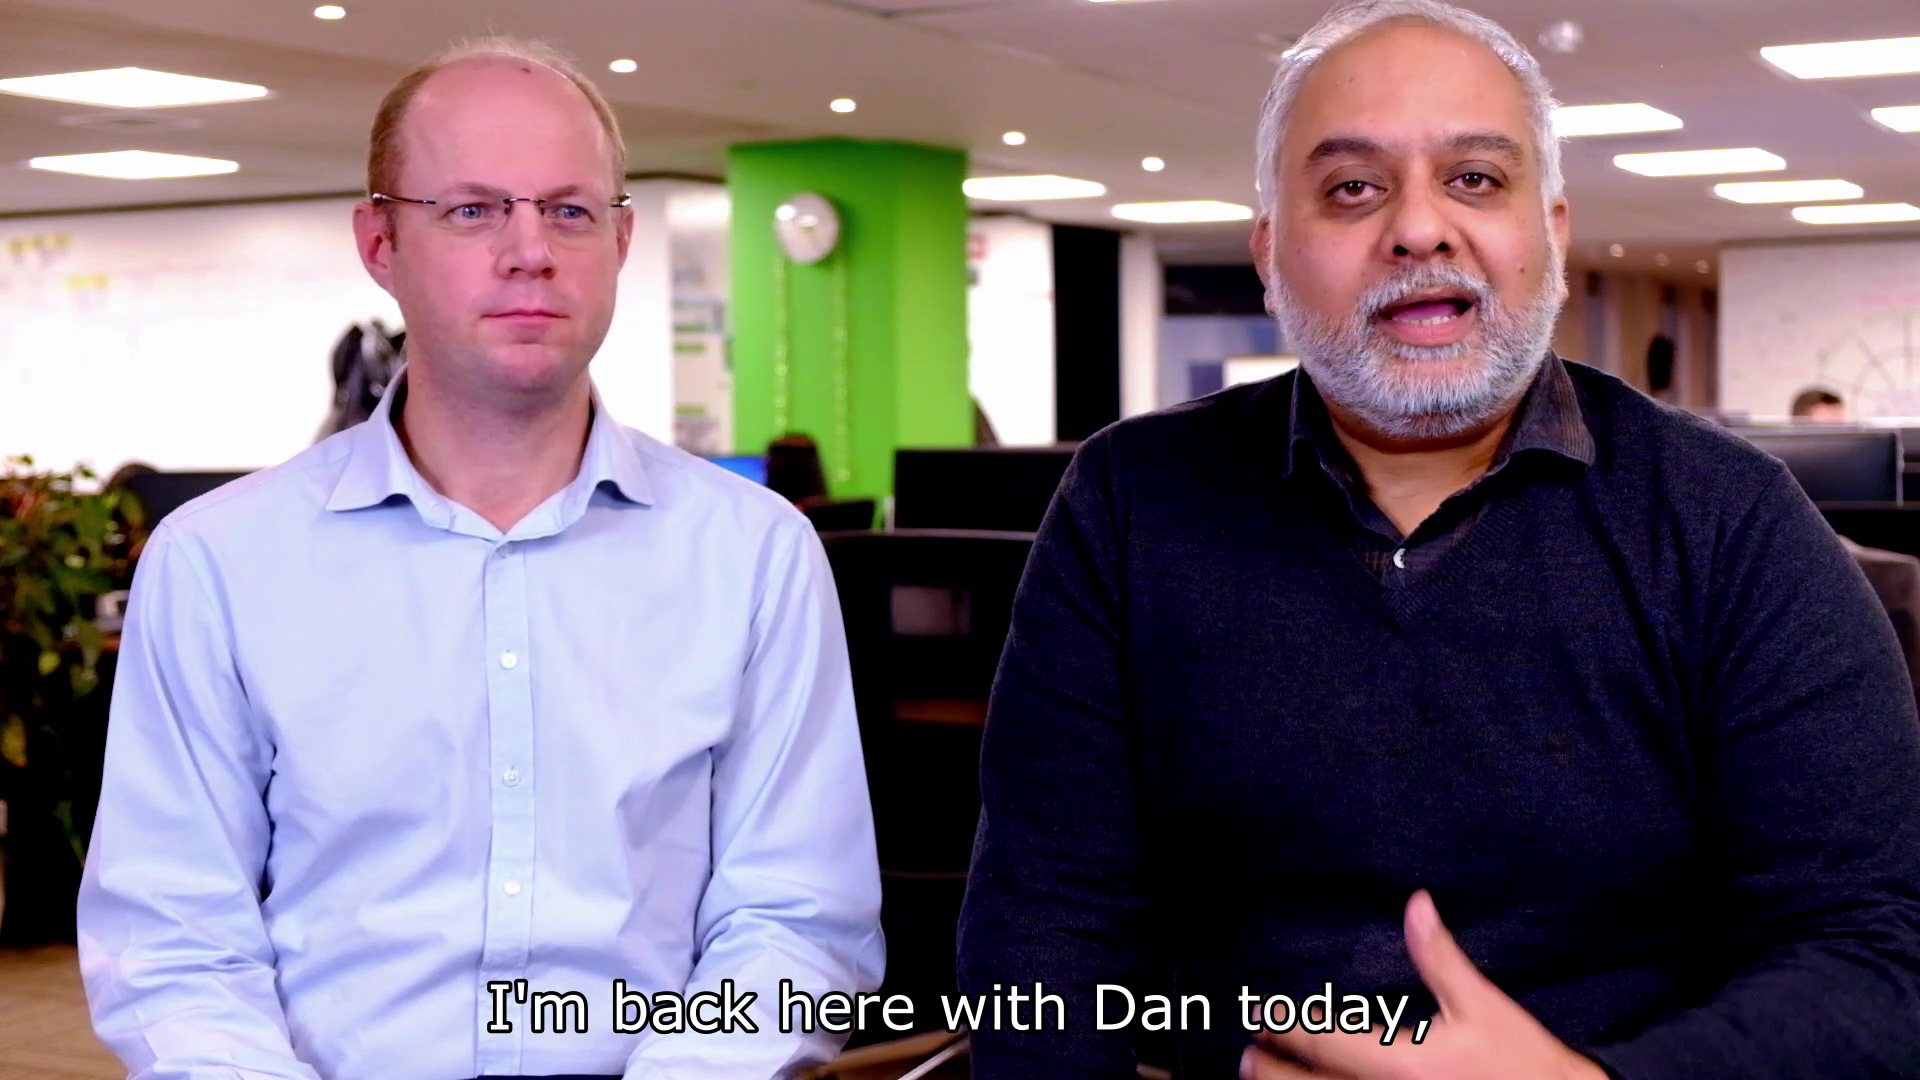 scalability video with captions